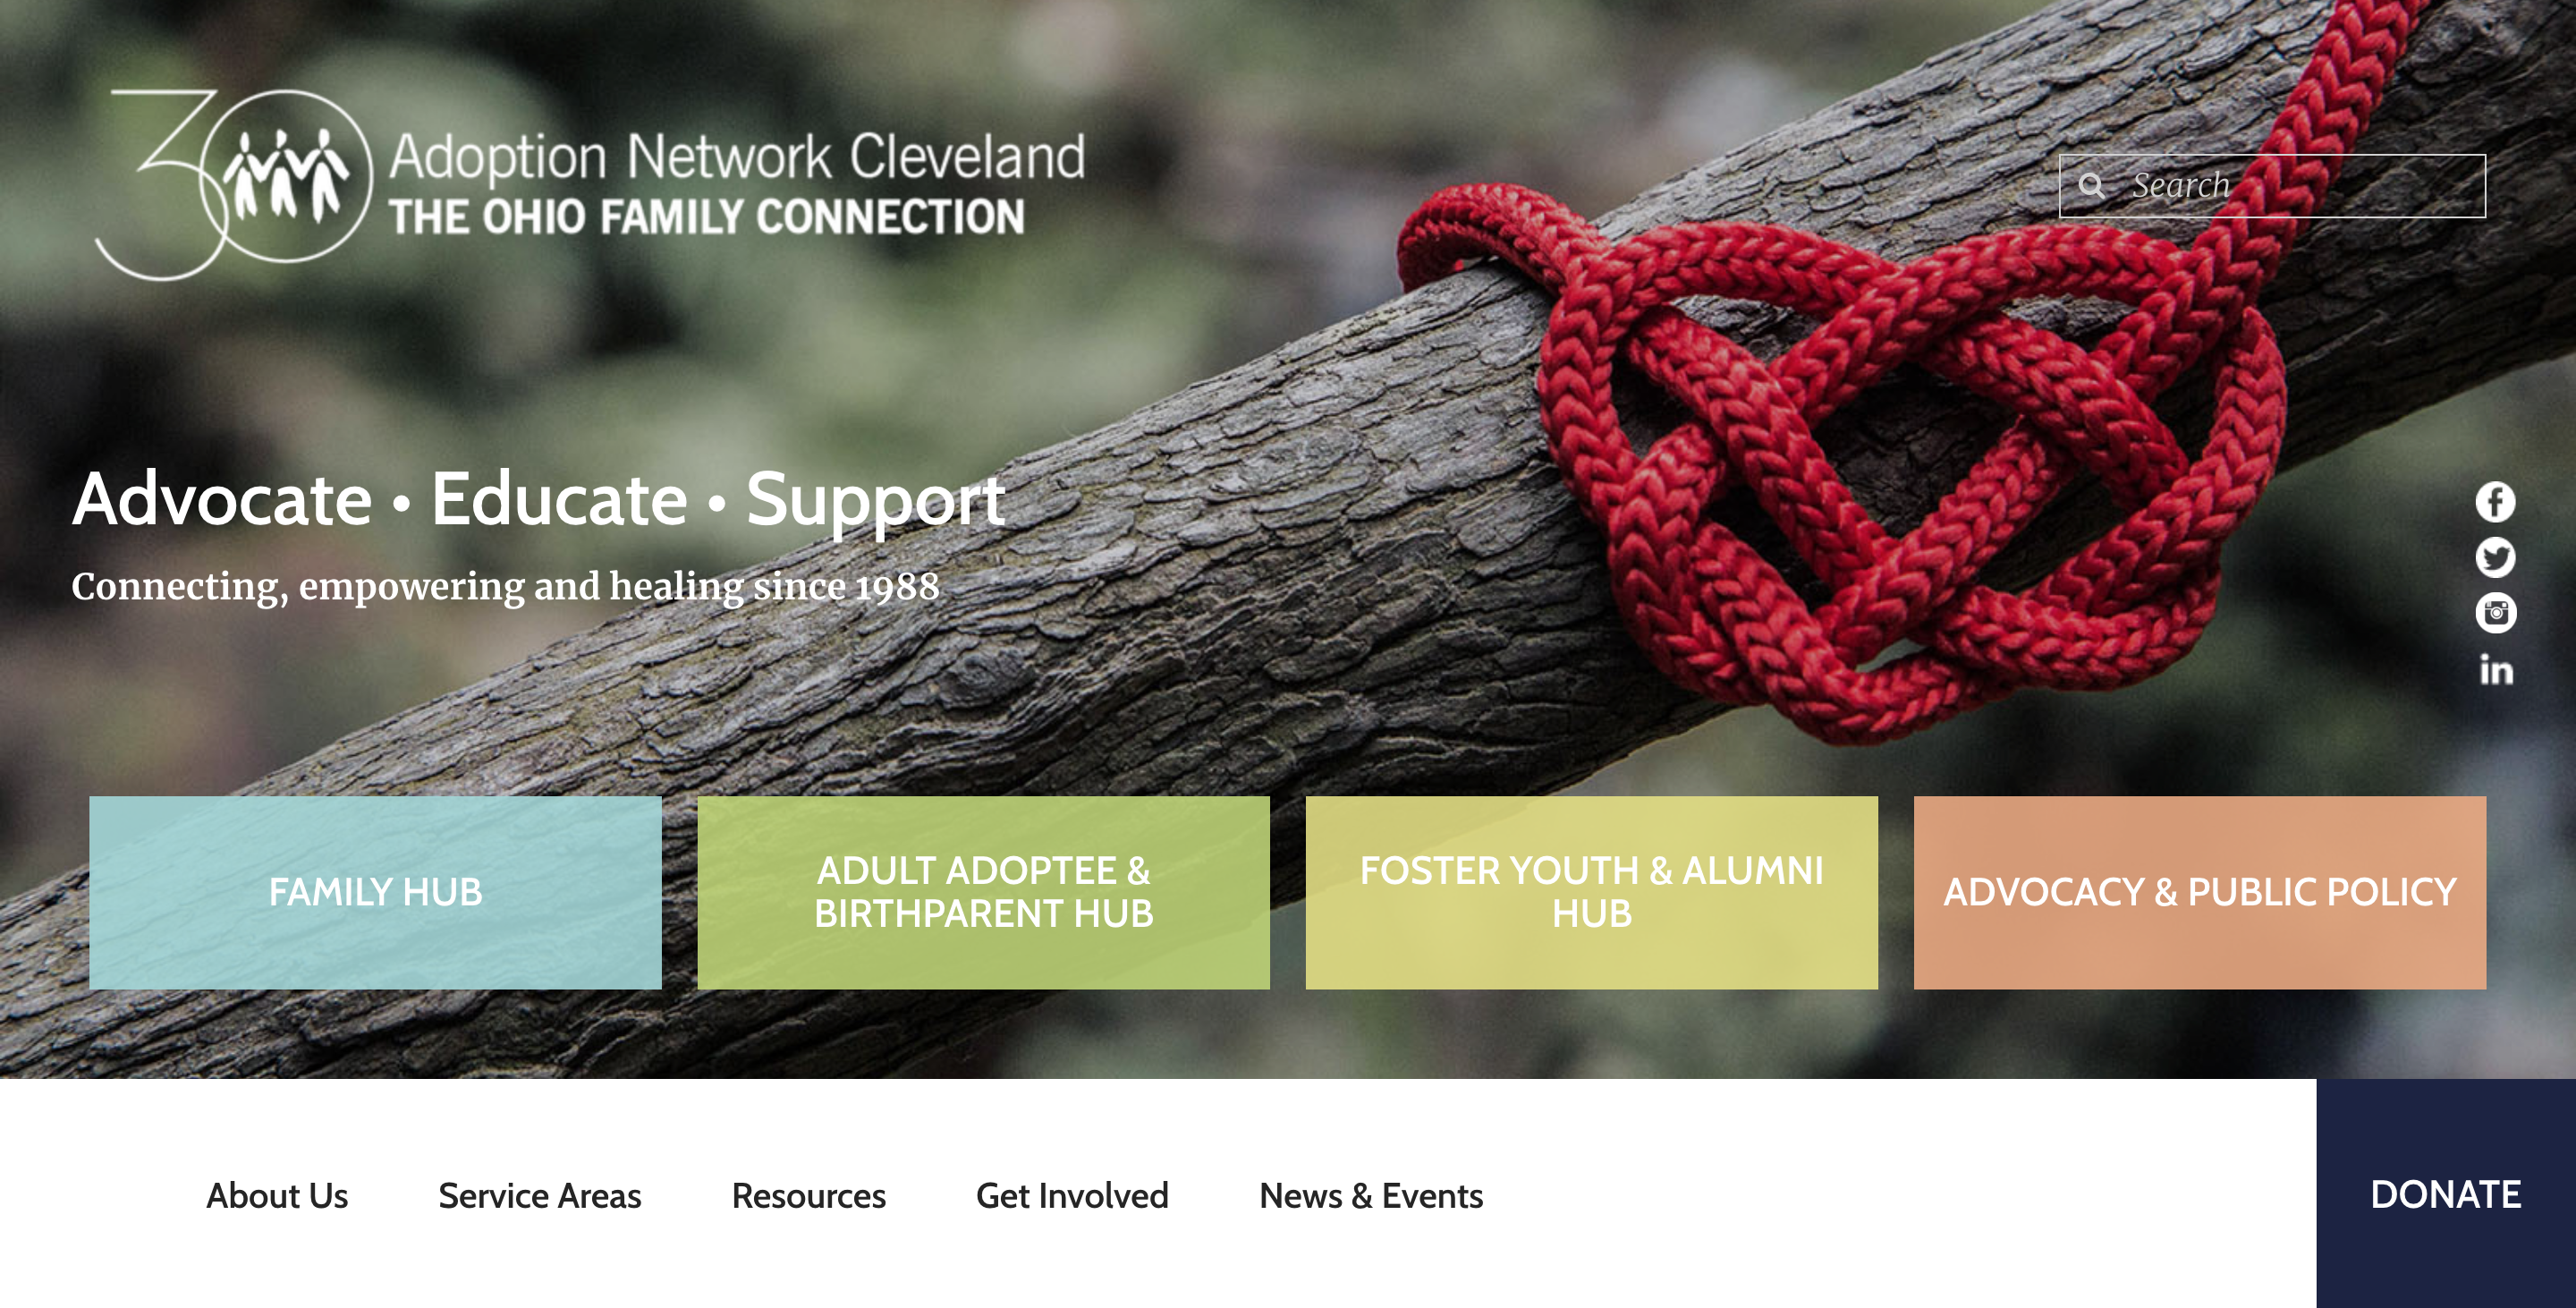 Adoption Network Cleveland launches new website, new tagline expanding reach